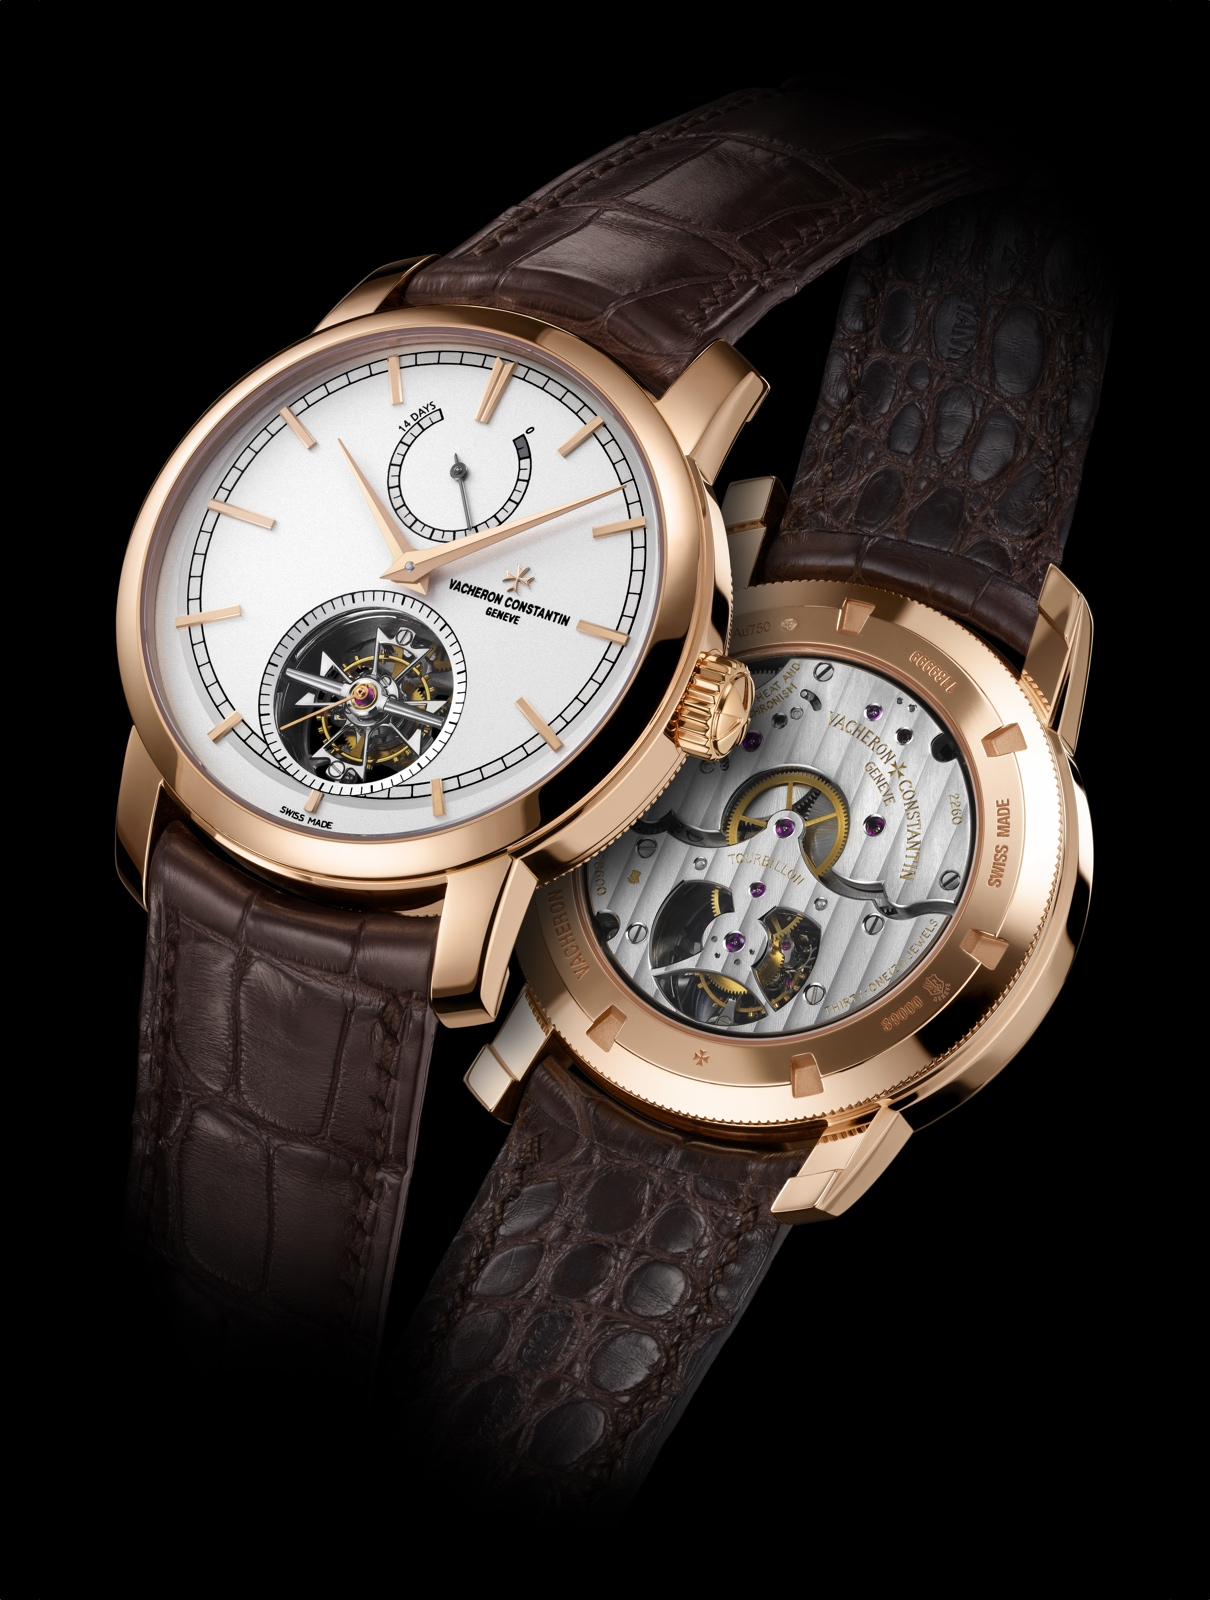 Vacheron Constantin Patrimony Traditionnelle Tourbillon 14 jours front back